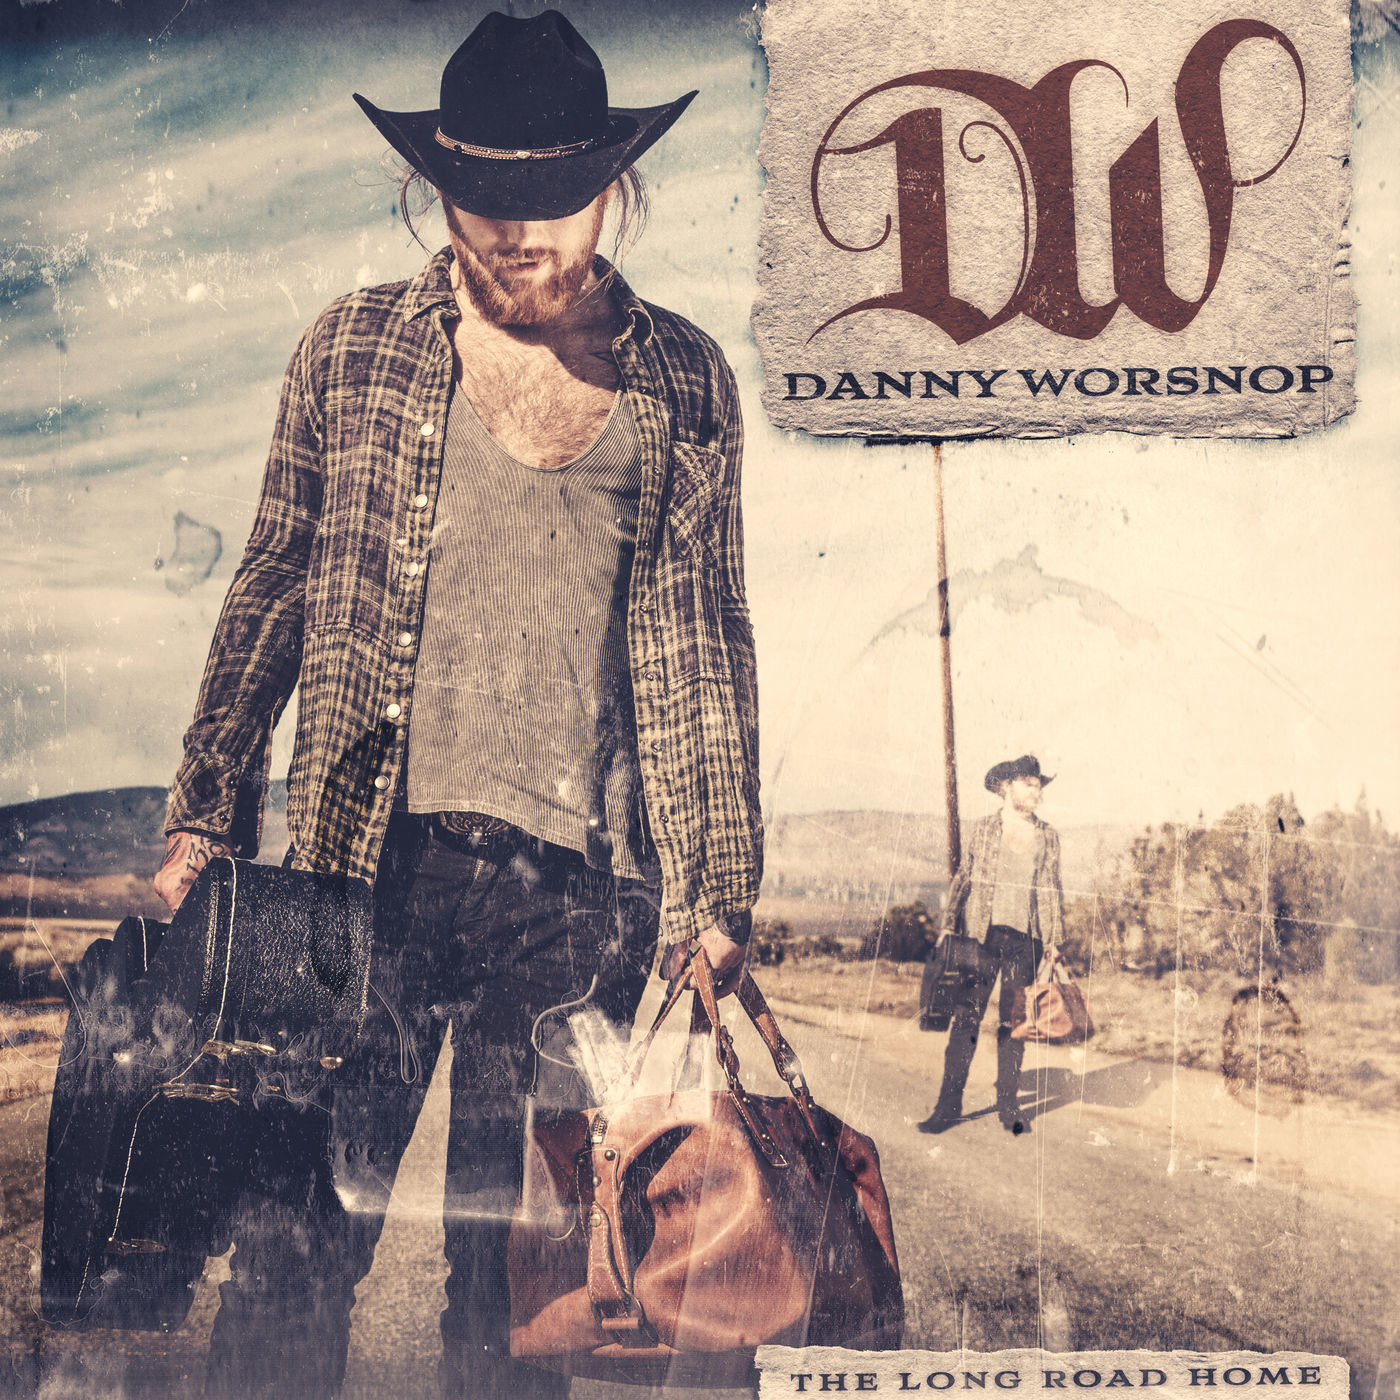 Danny Worsnop - Anyone But Me [single] (2017)